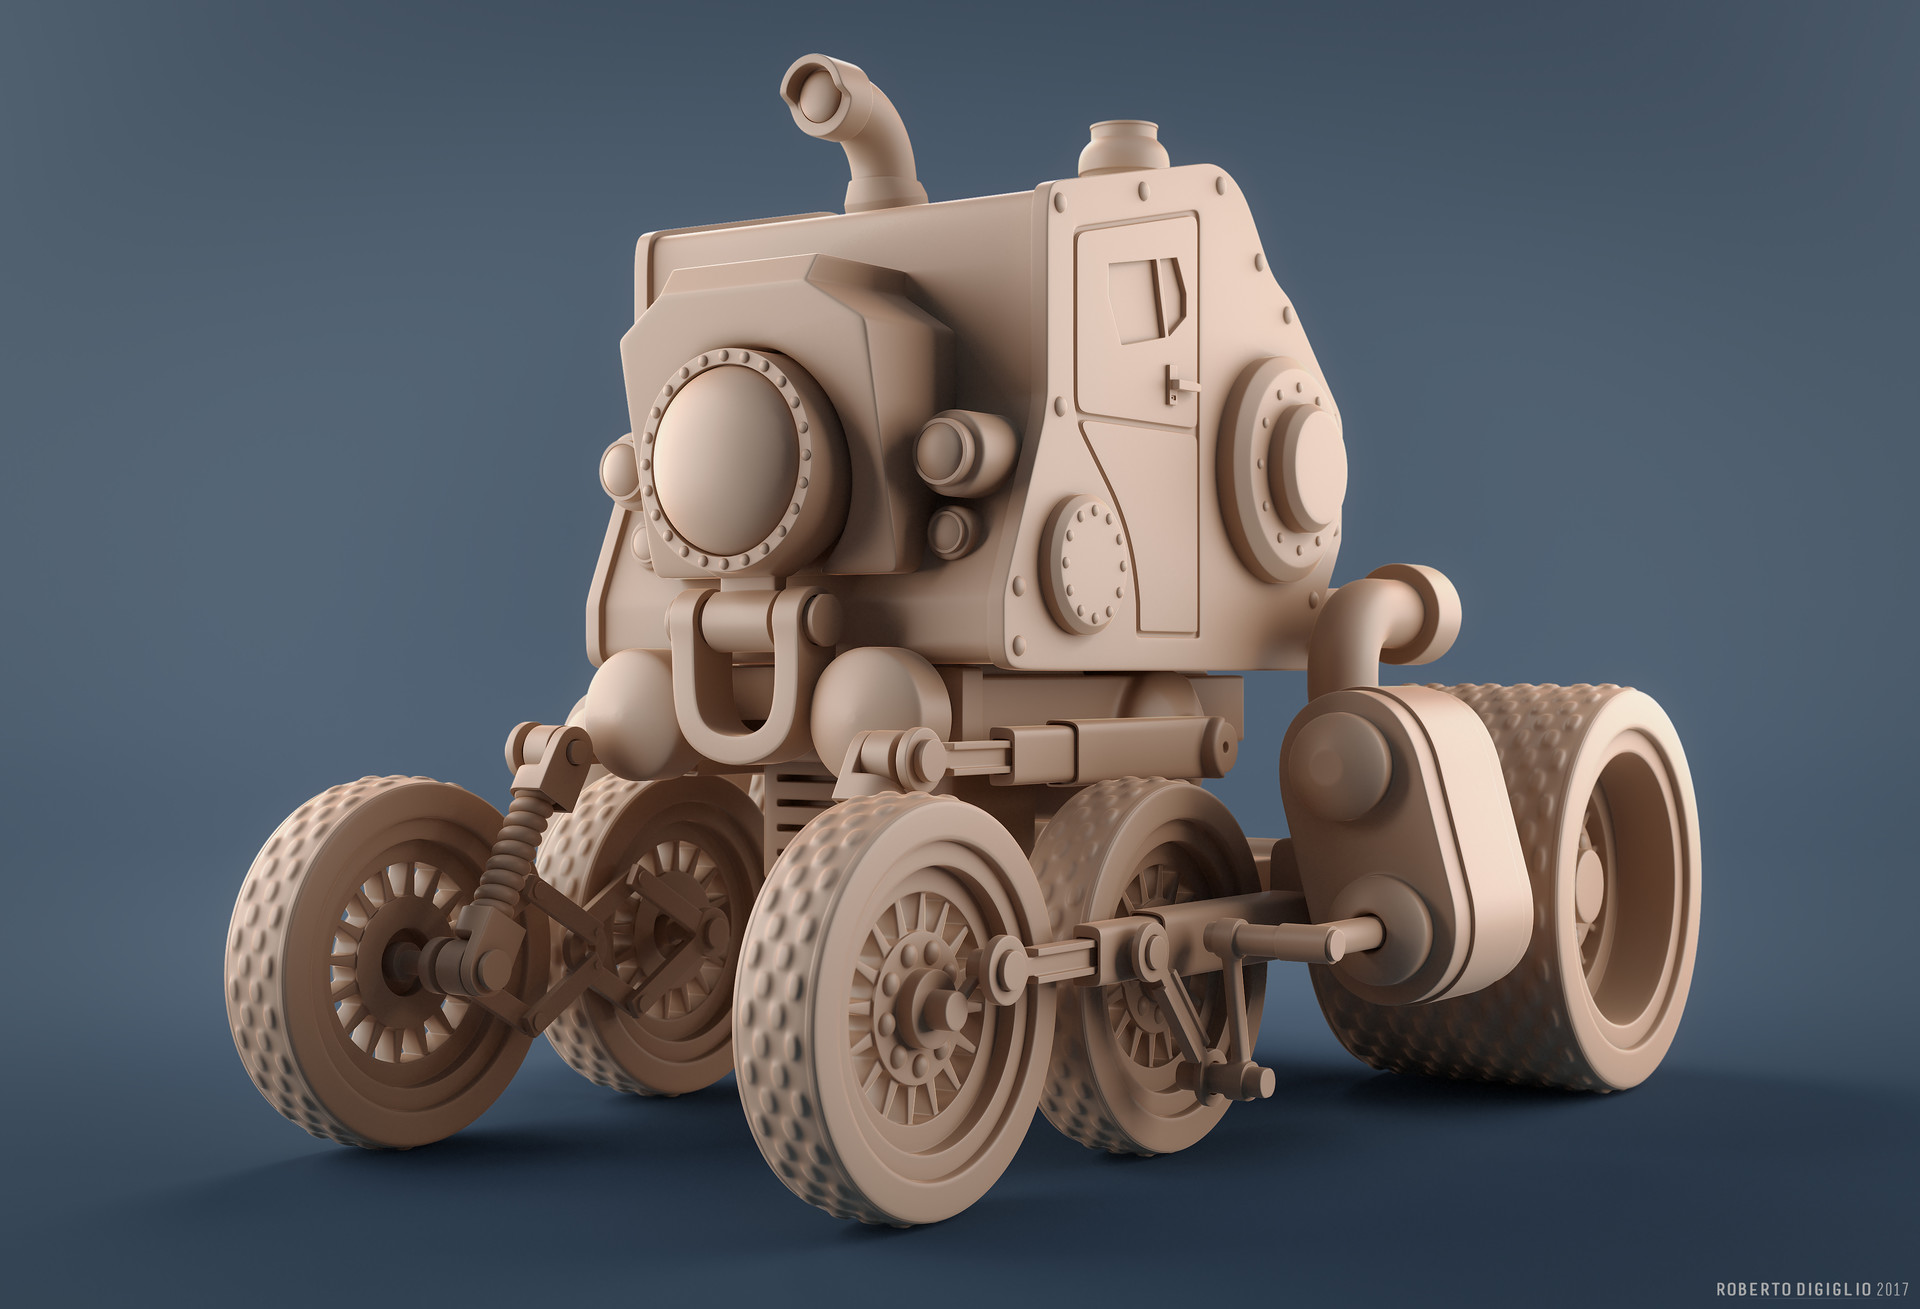 Roberto digiglio steampunkvehicleclay1hd